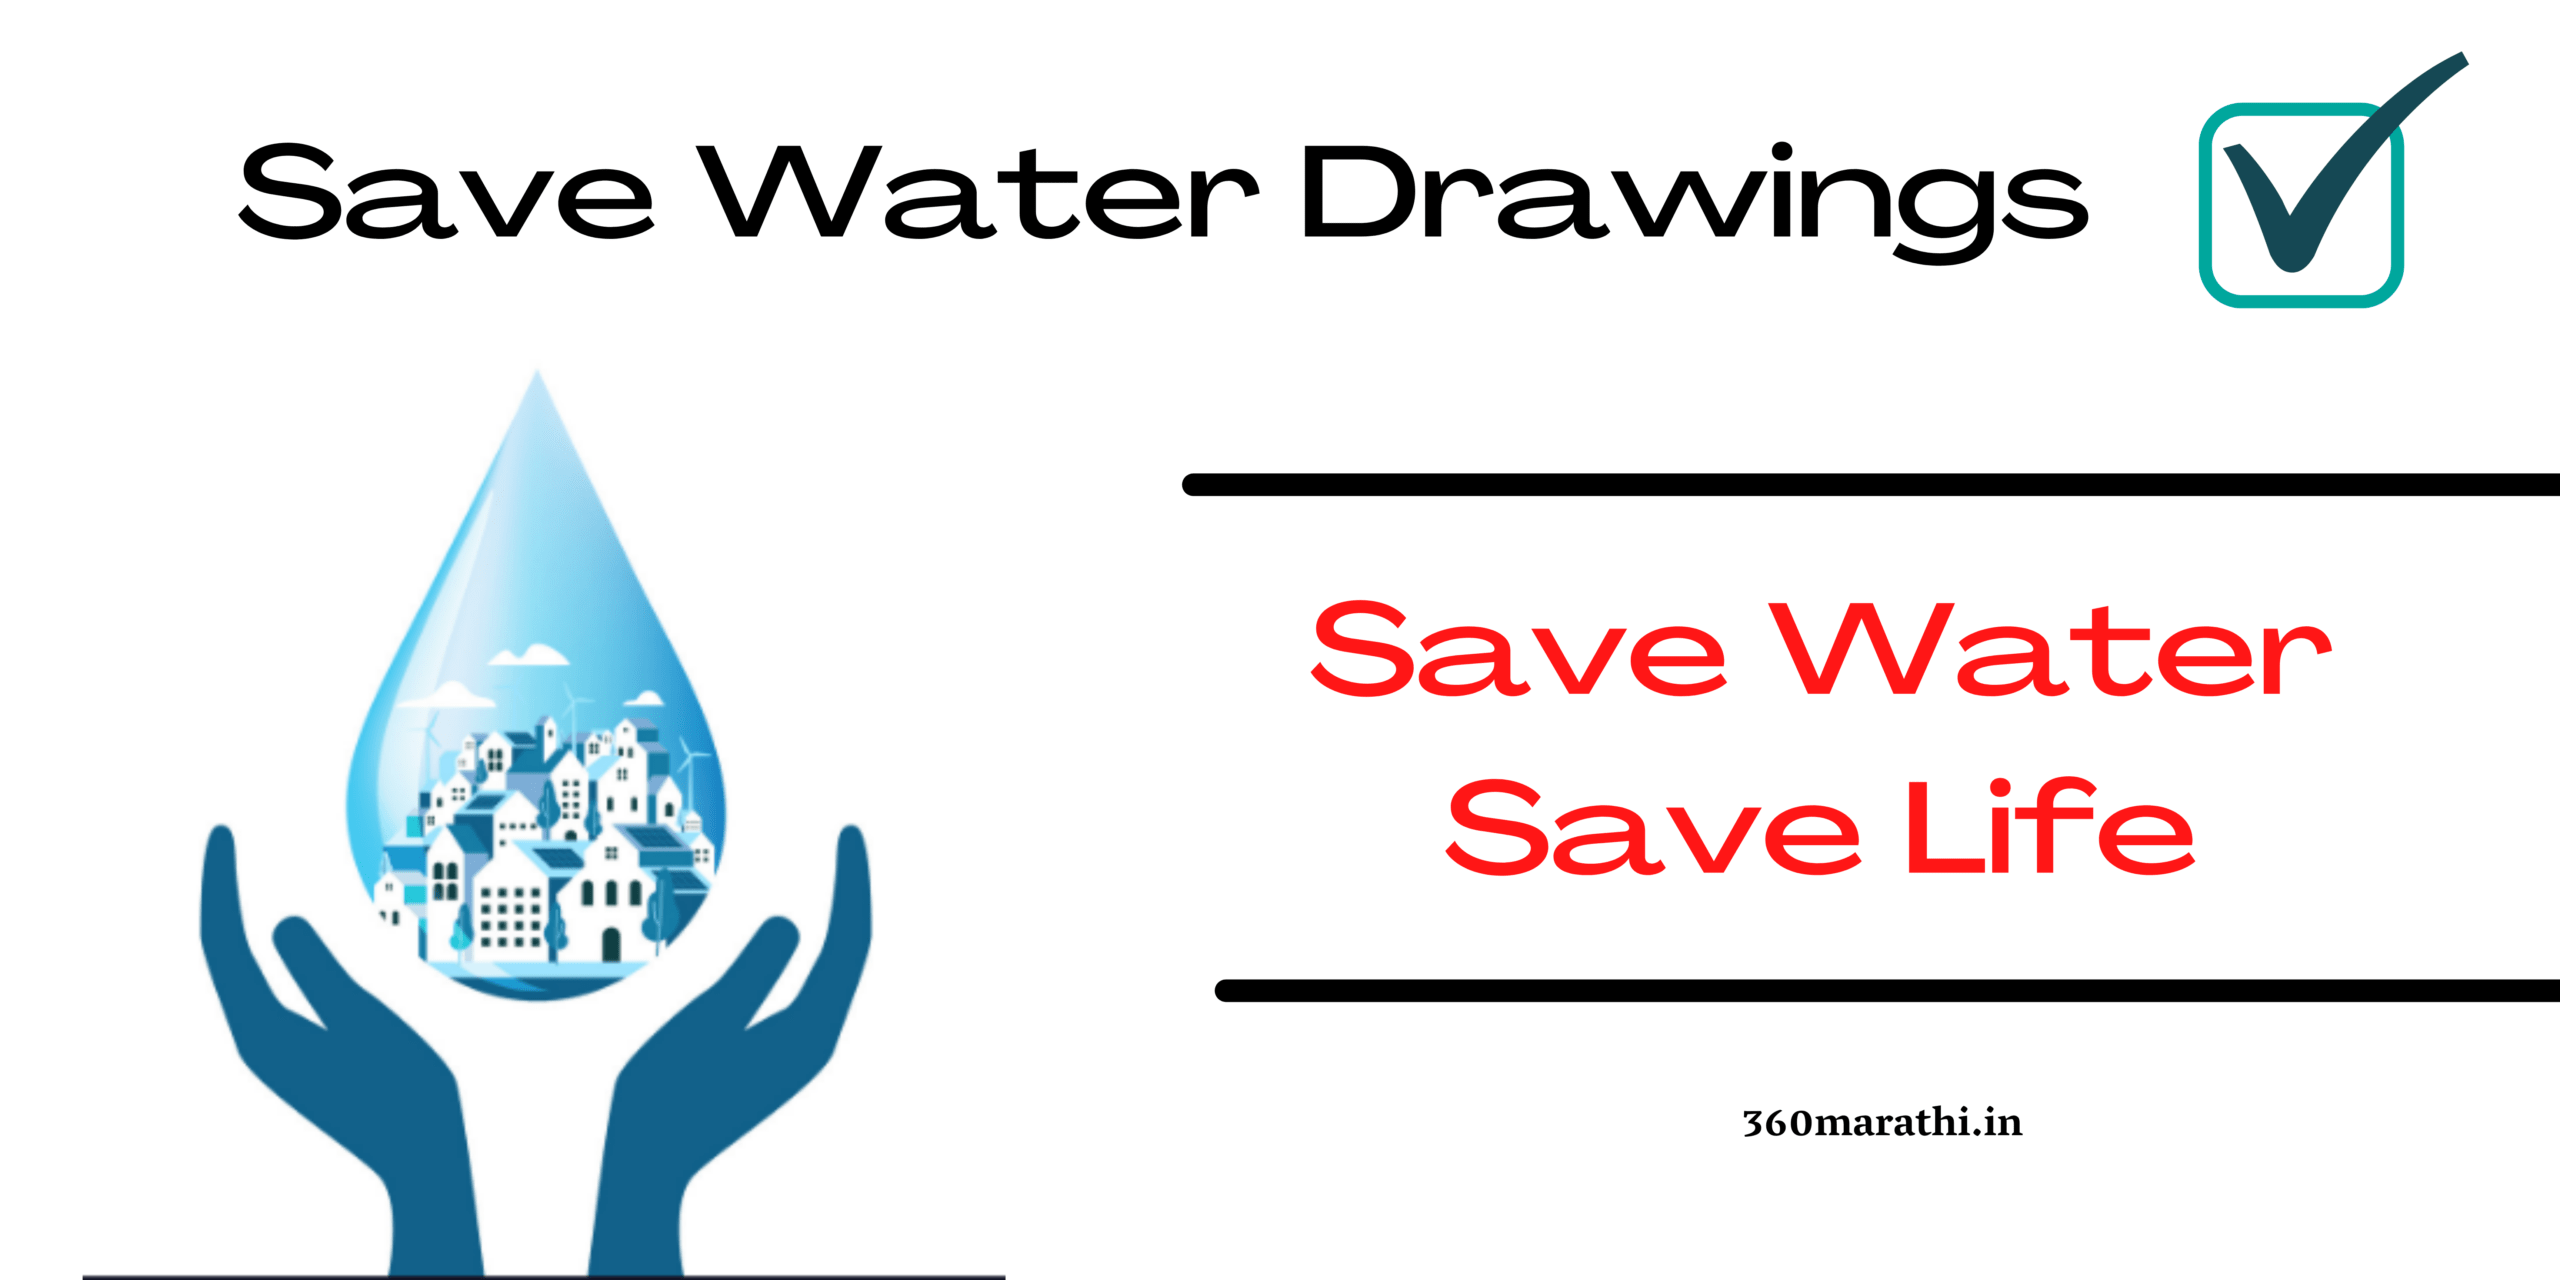 【Easy & Hard】Save Water Drawings Images For Drawing Competition